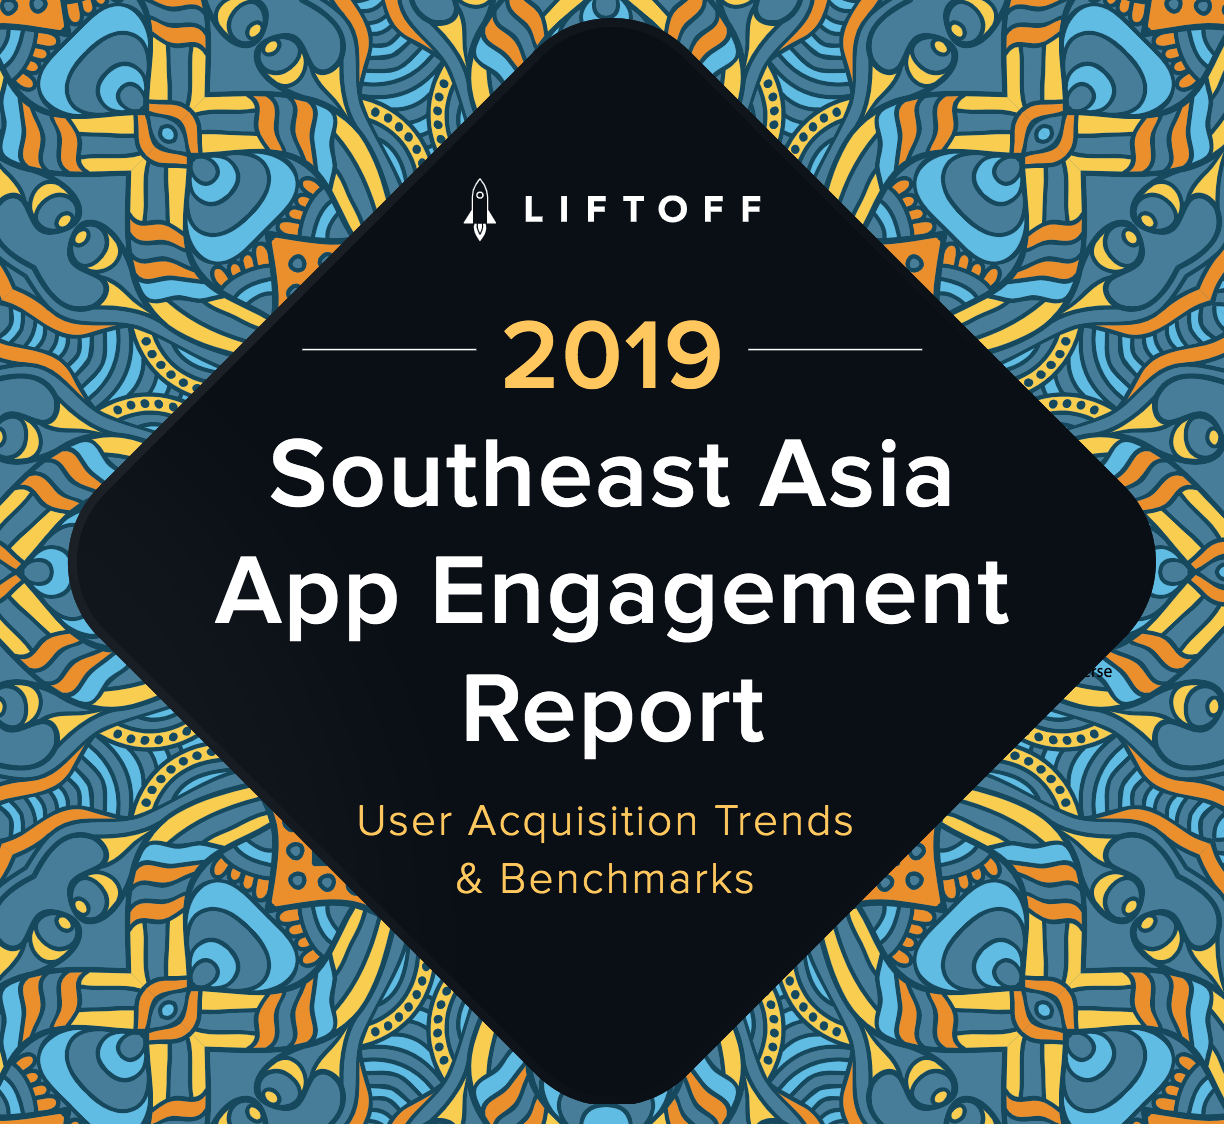 Liftoff report shows SEA provides growth prospects for app marketers